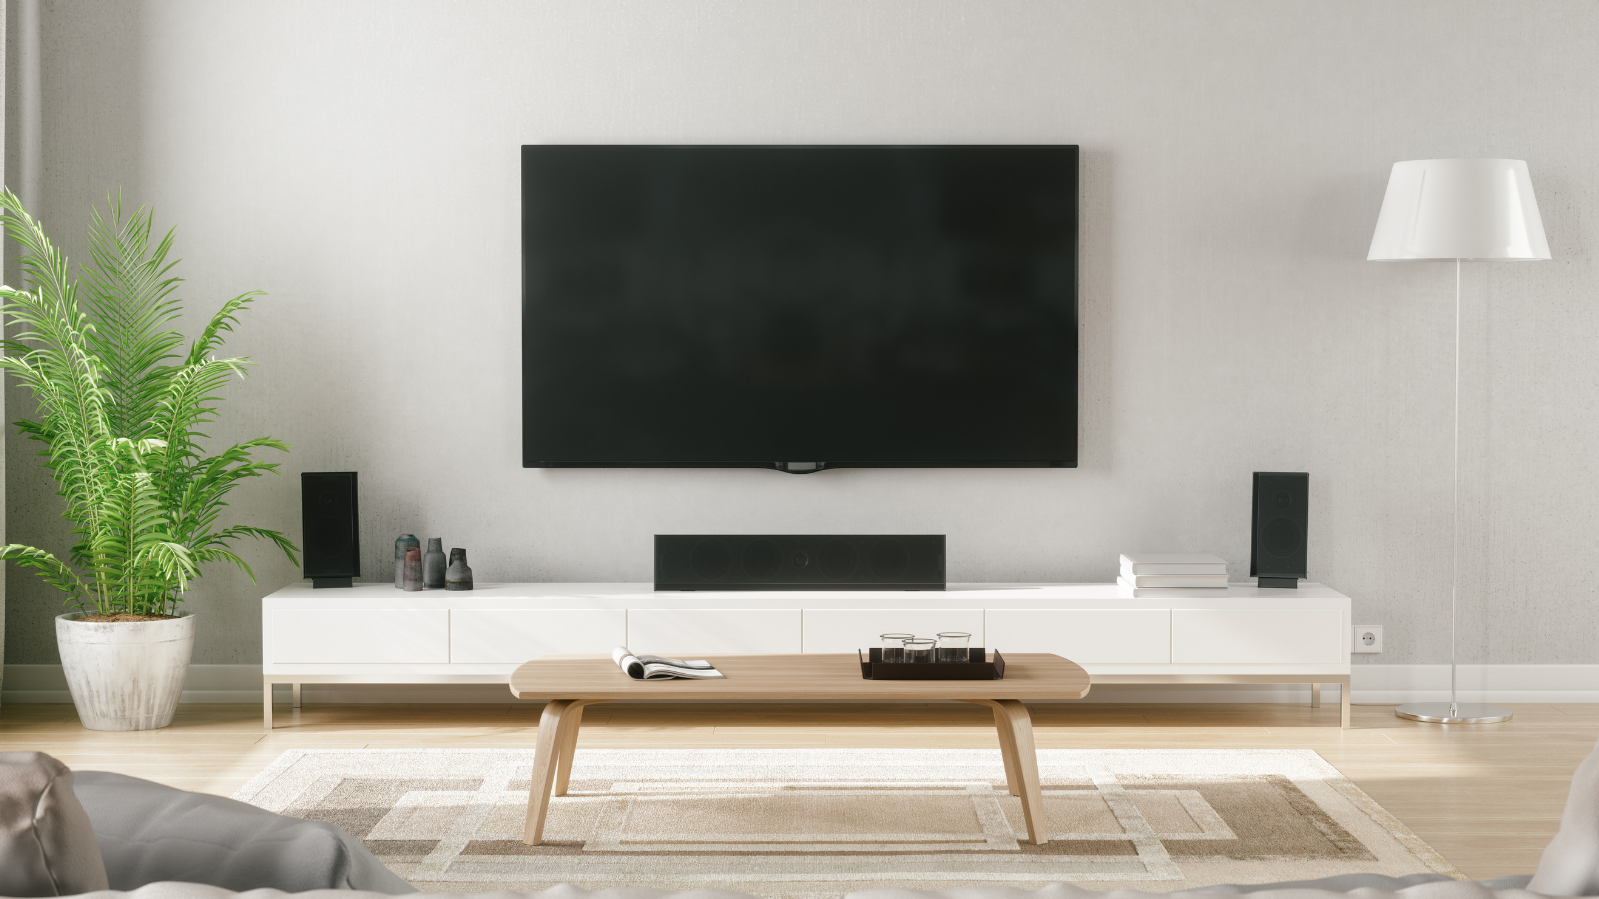 The best TVs of 2019